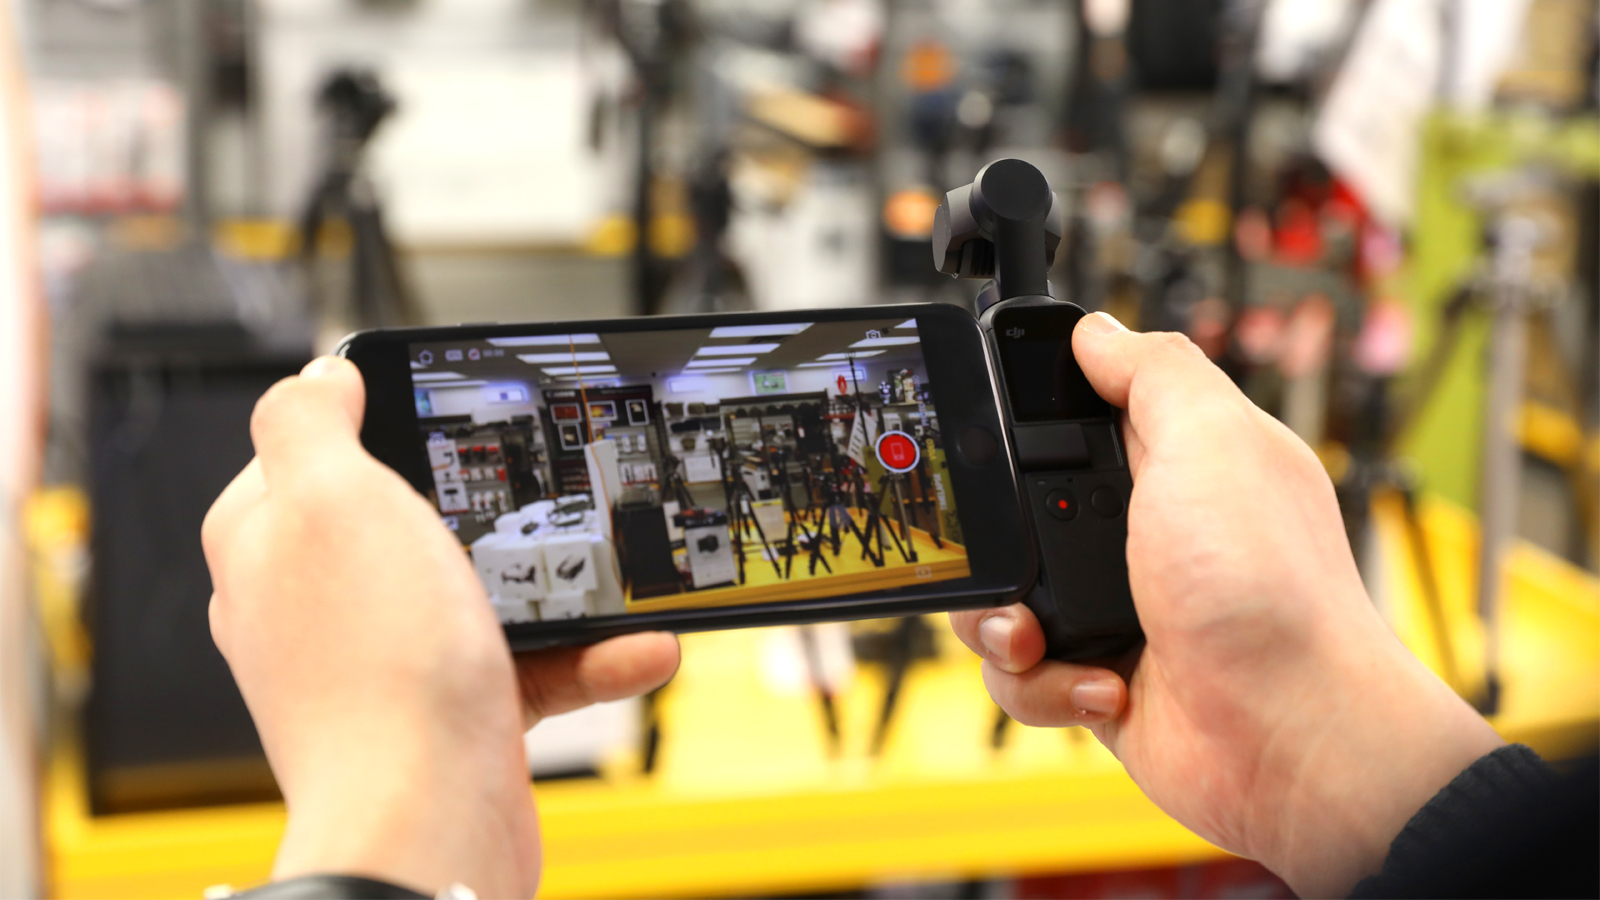 The DJI Osmo Pocket attached to smartphone